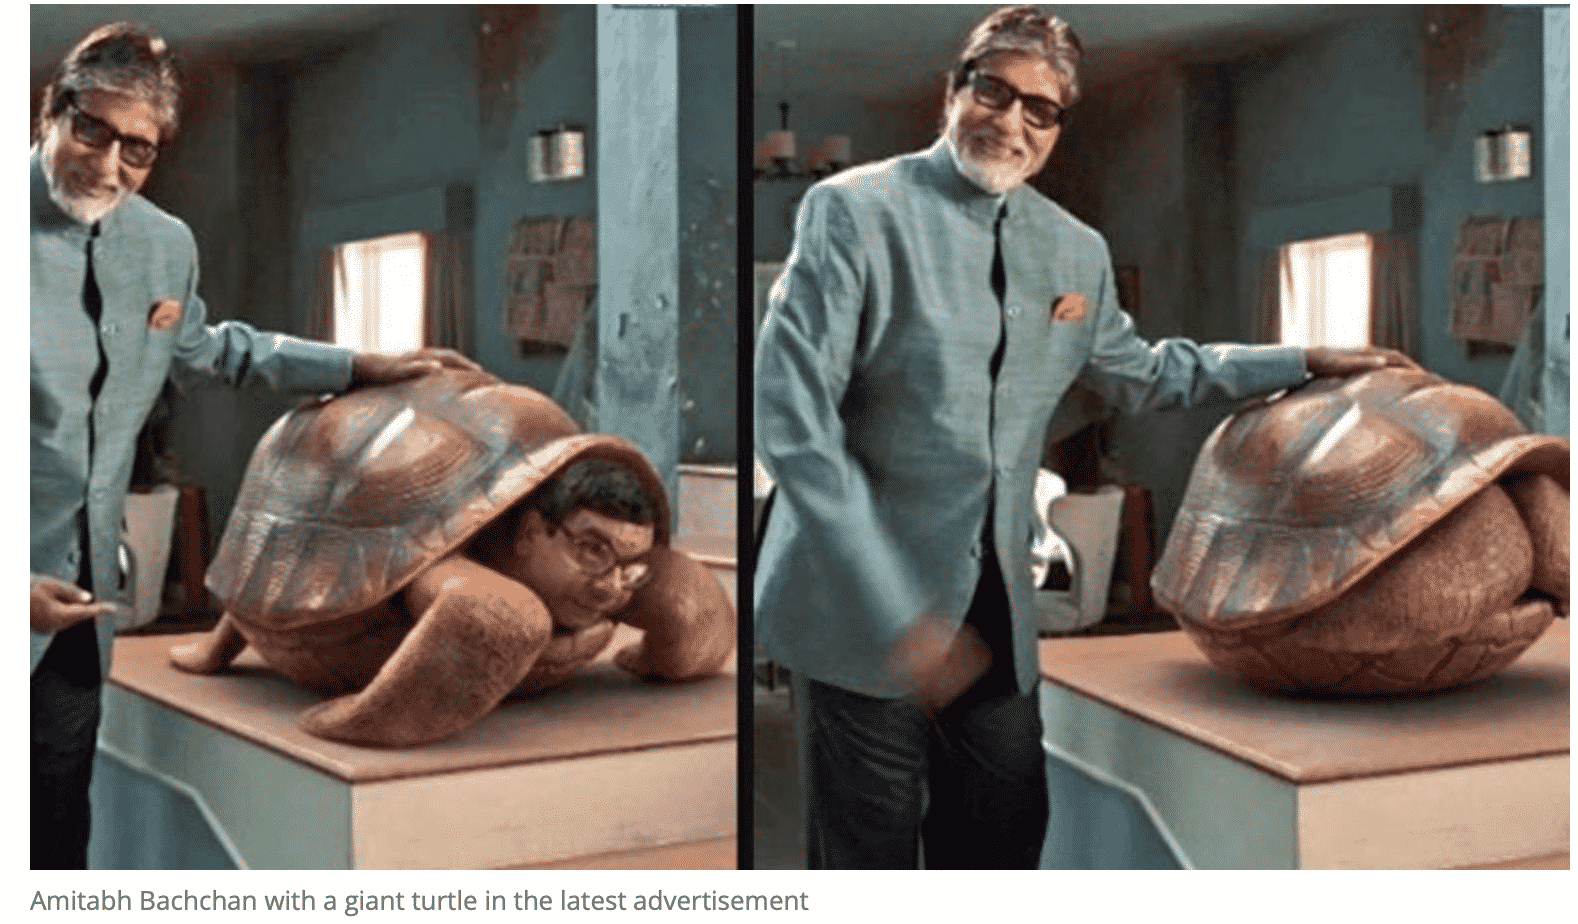 Amitabh Bachchan is chilling with giant turtle in latest ad. Twitter has best memes. 3